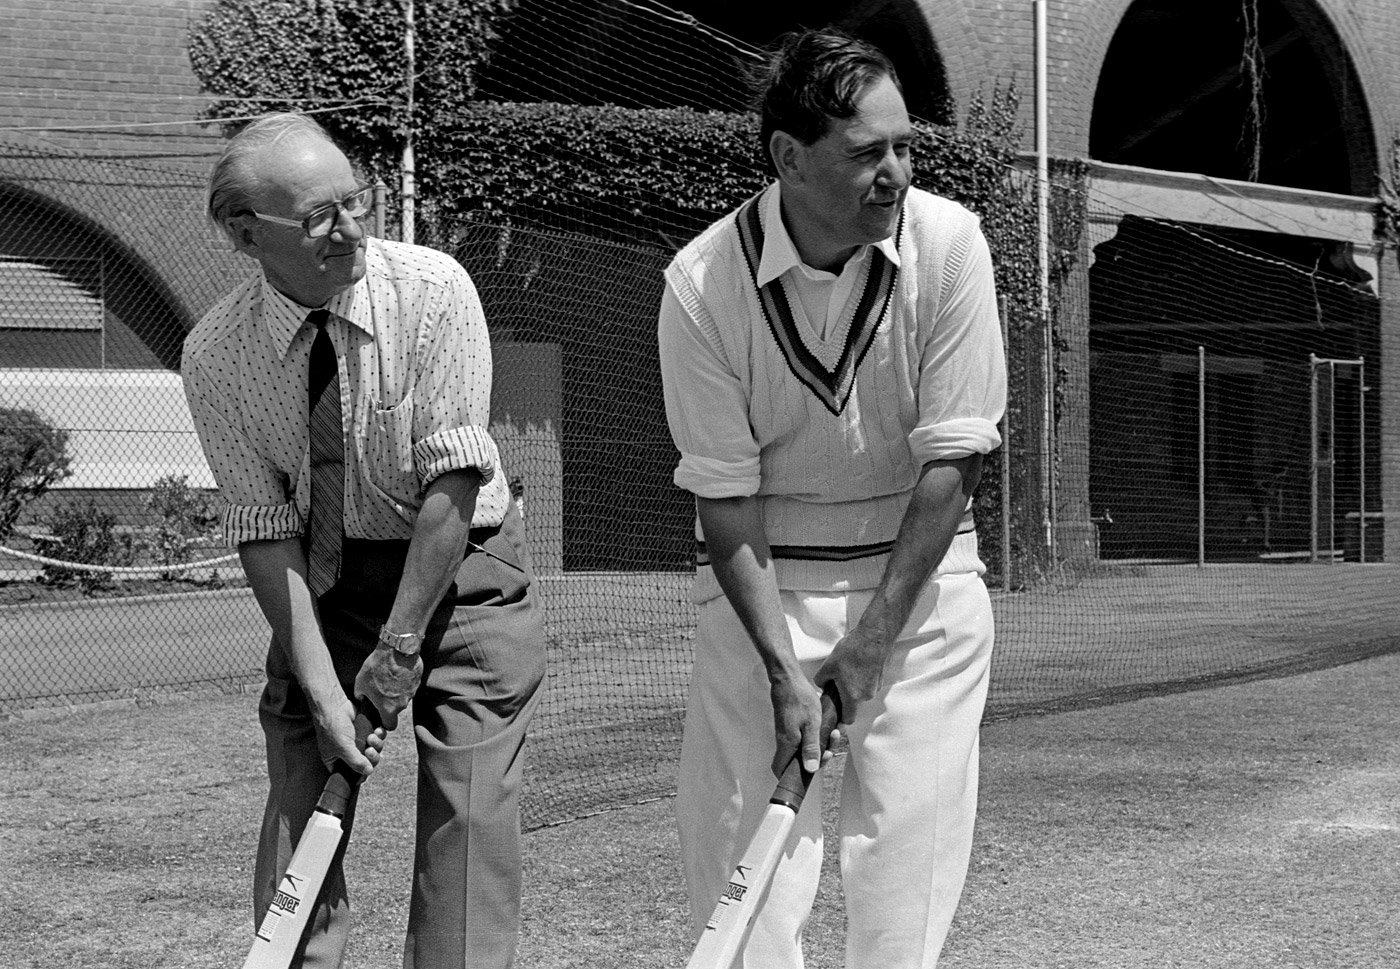 Don Bradman's grip wasn't the one prescribed by the MCC